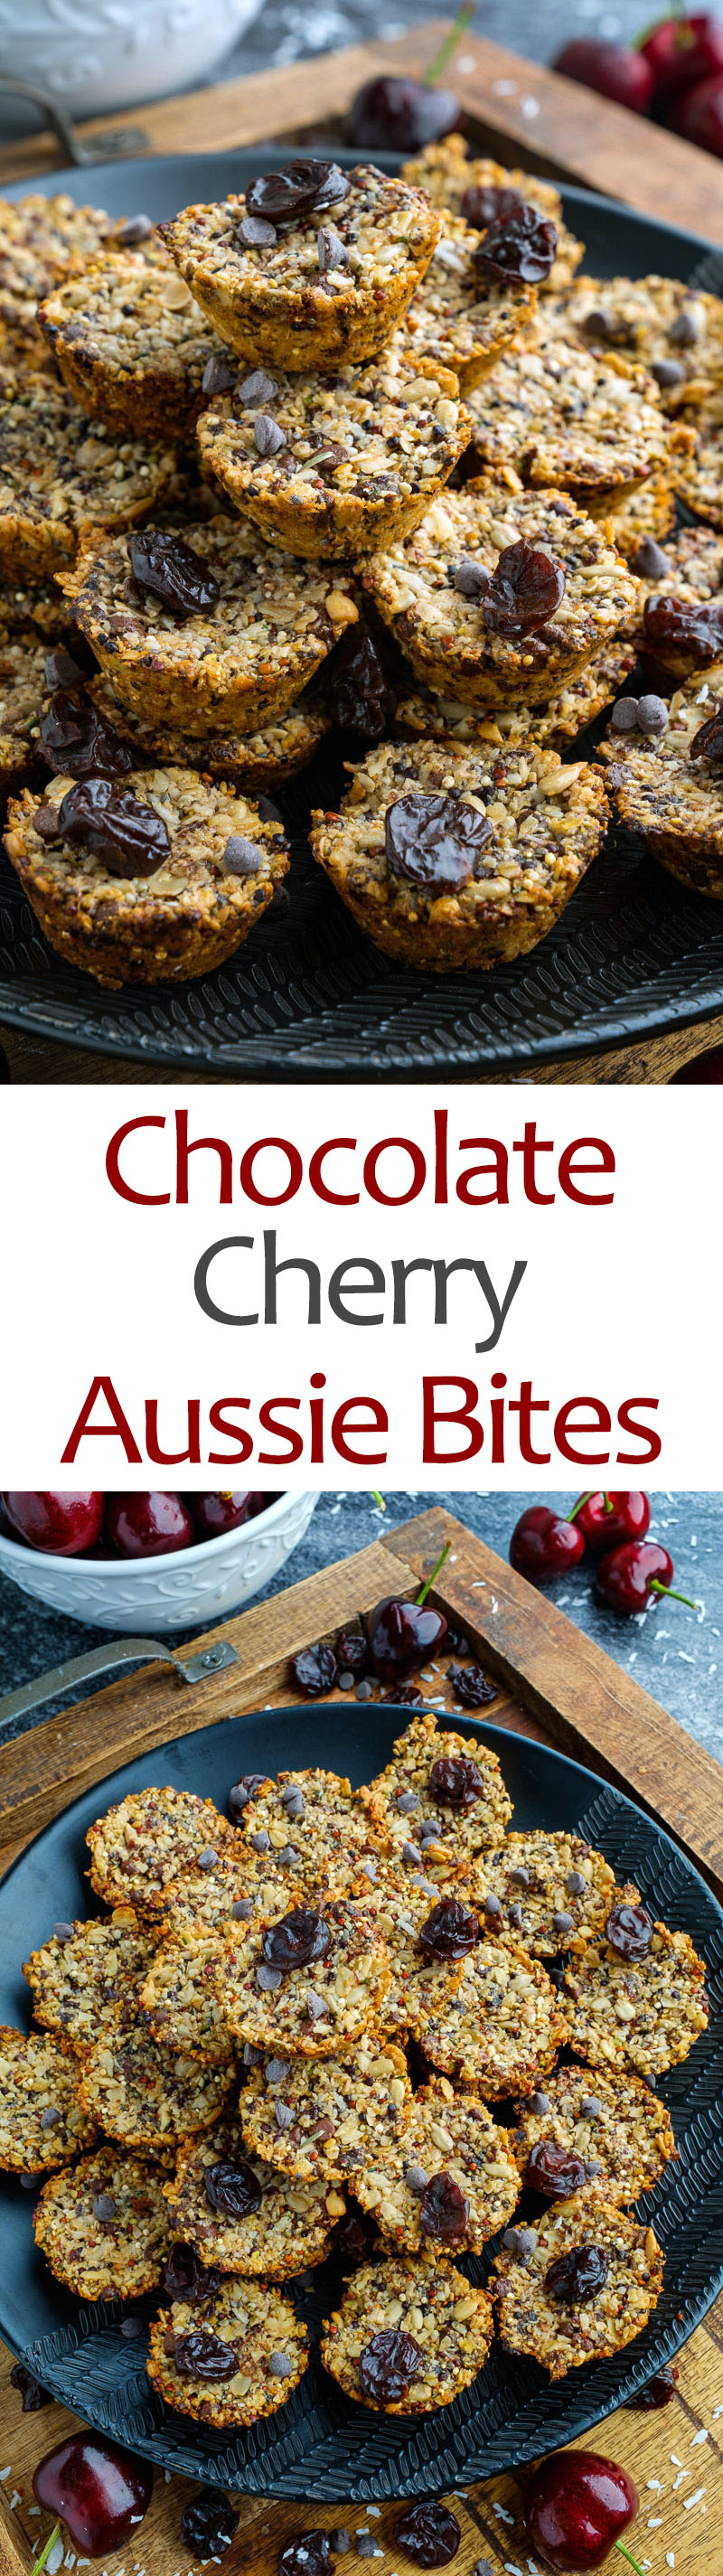 Dark Chocolate and Cherry Aussie Bites